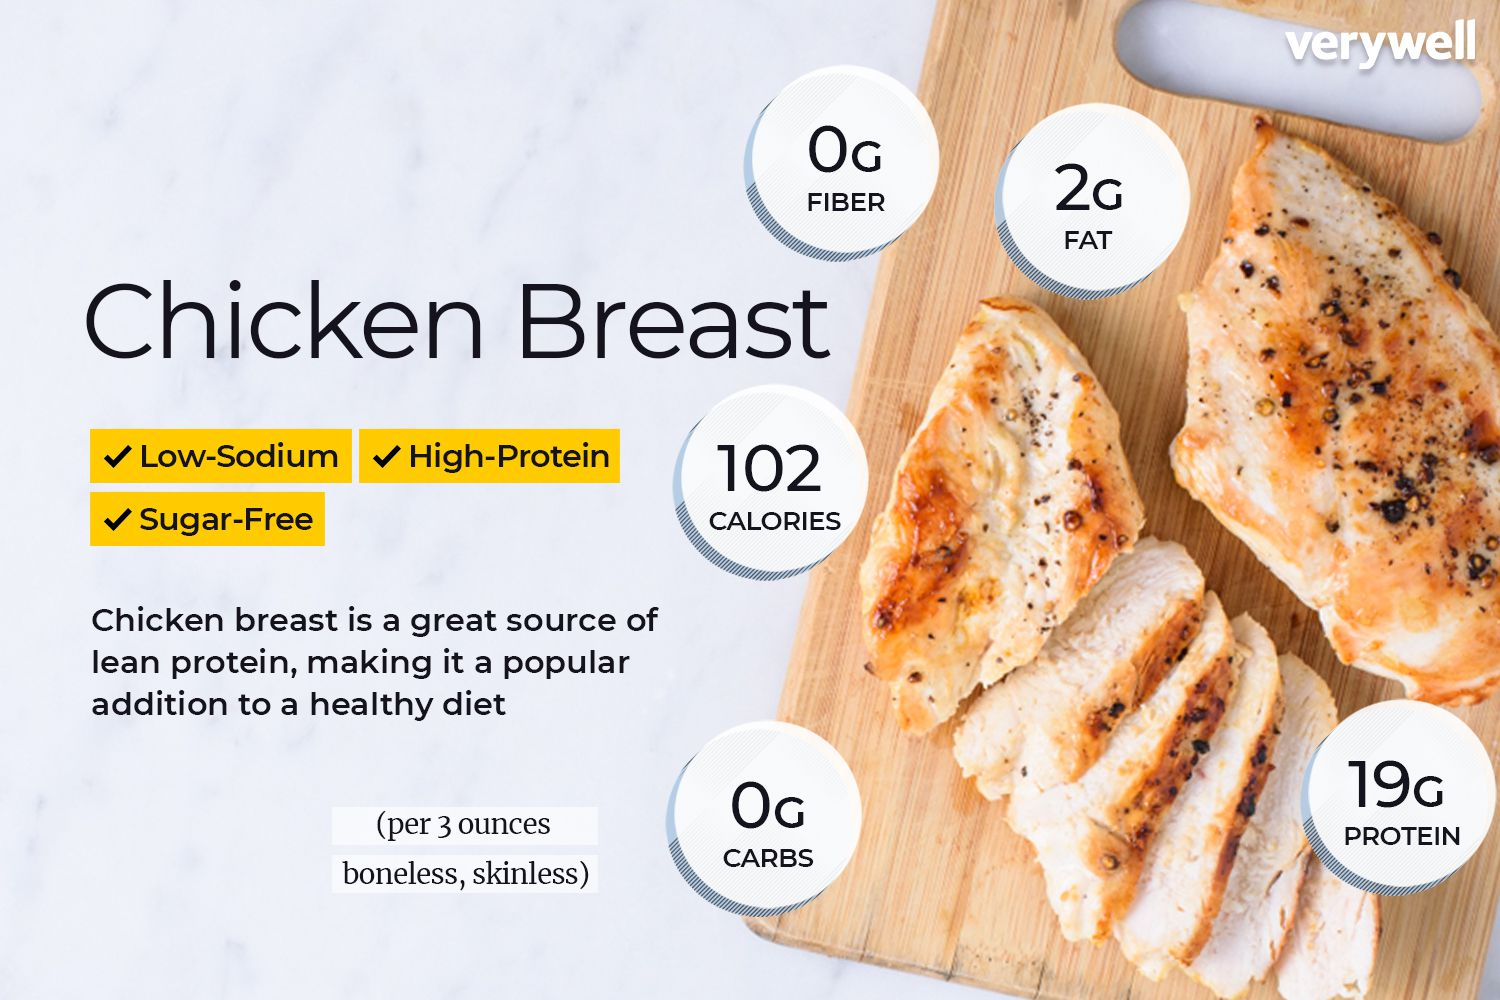 two chicken breasts per day diet